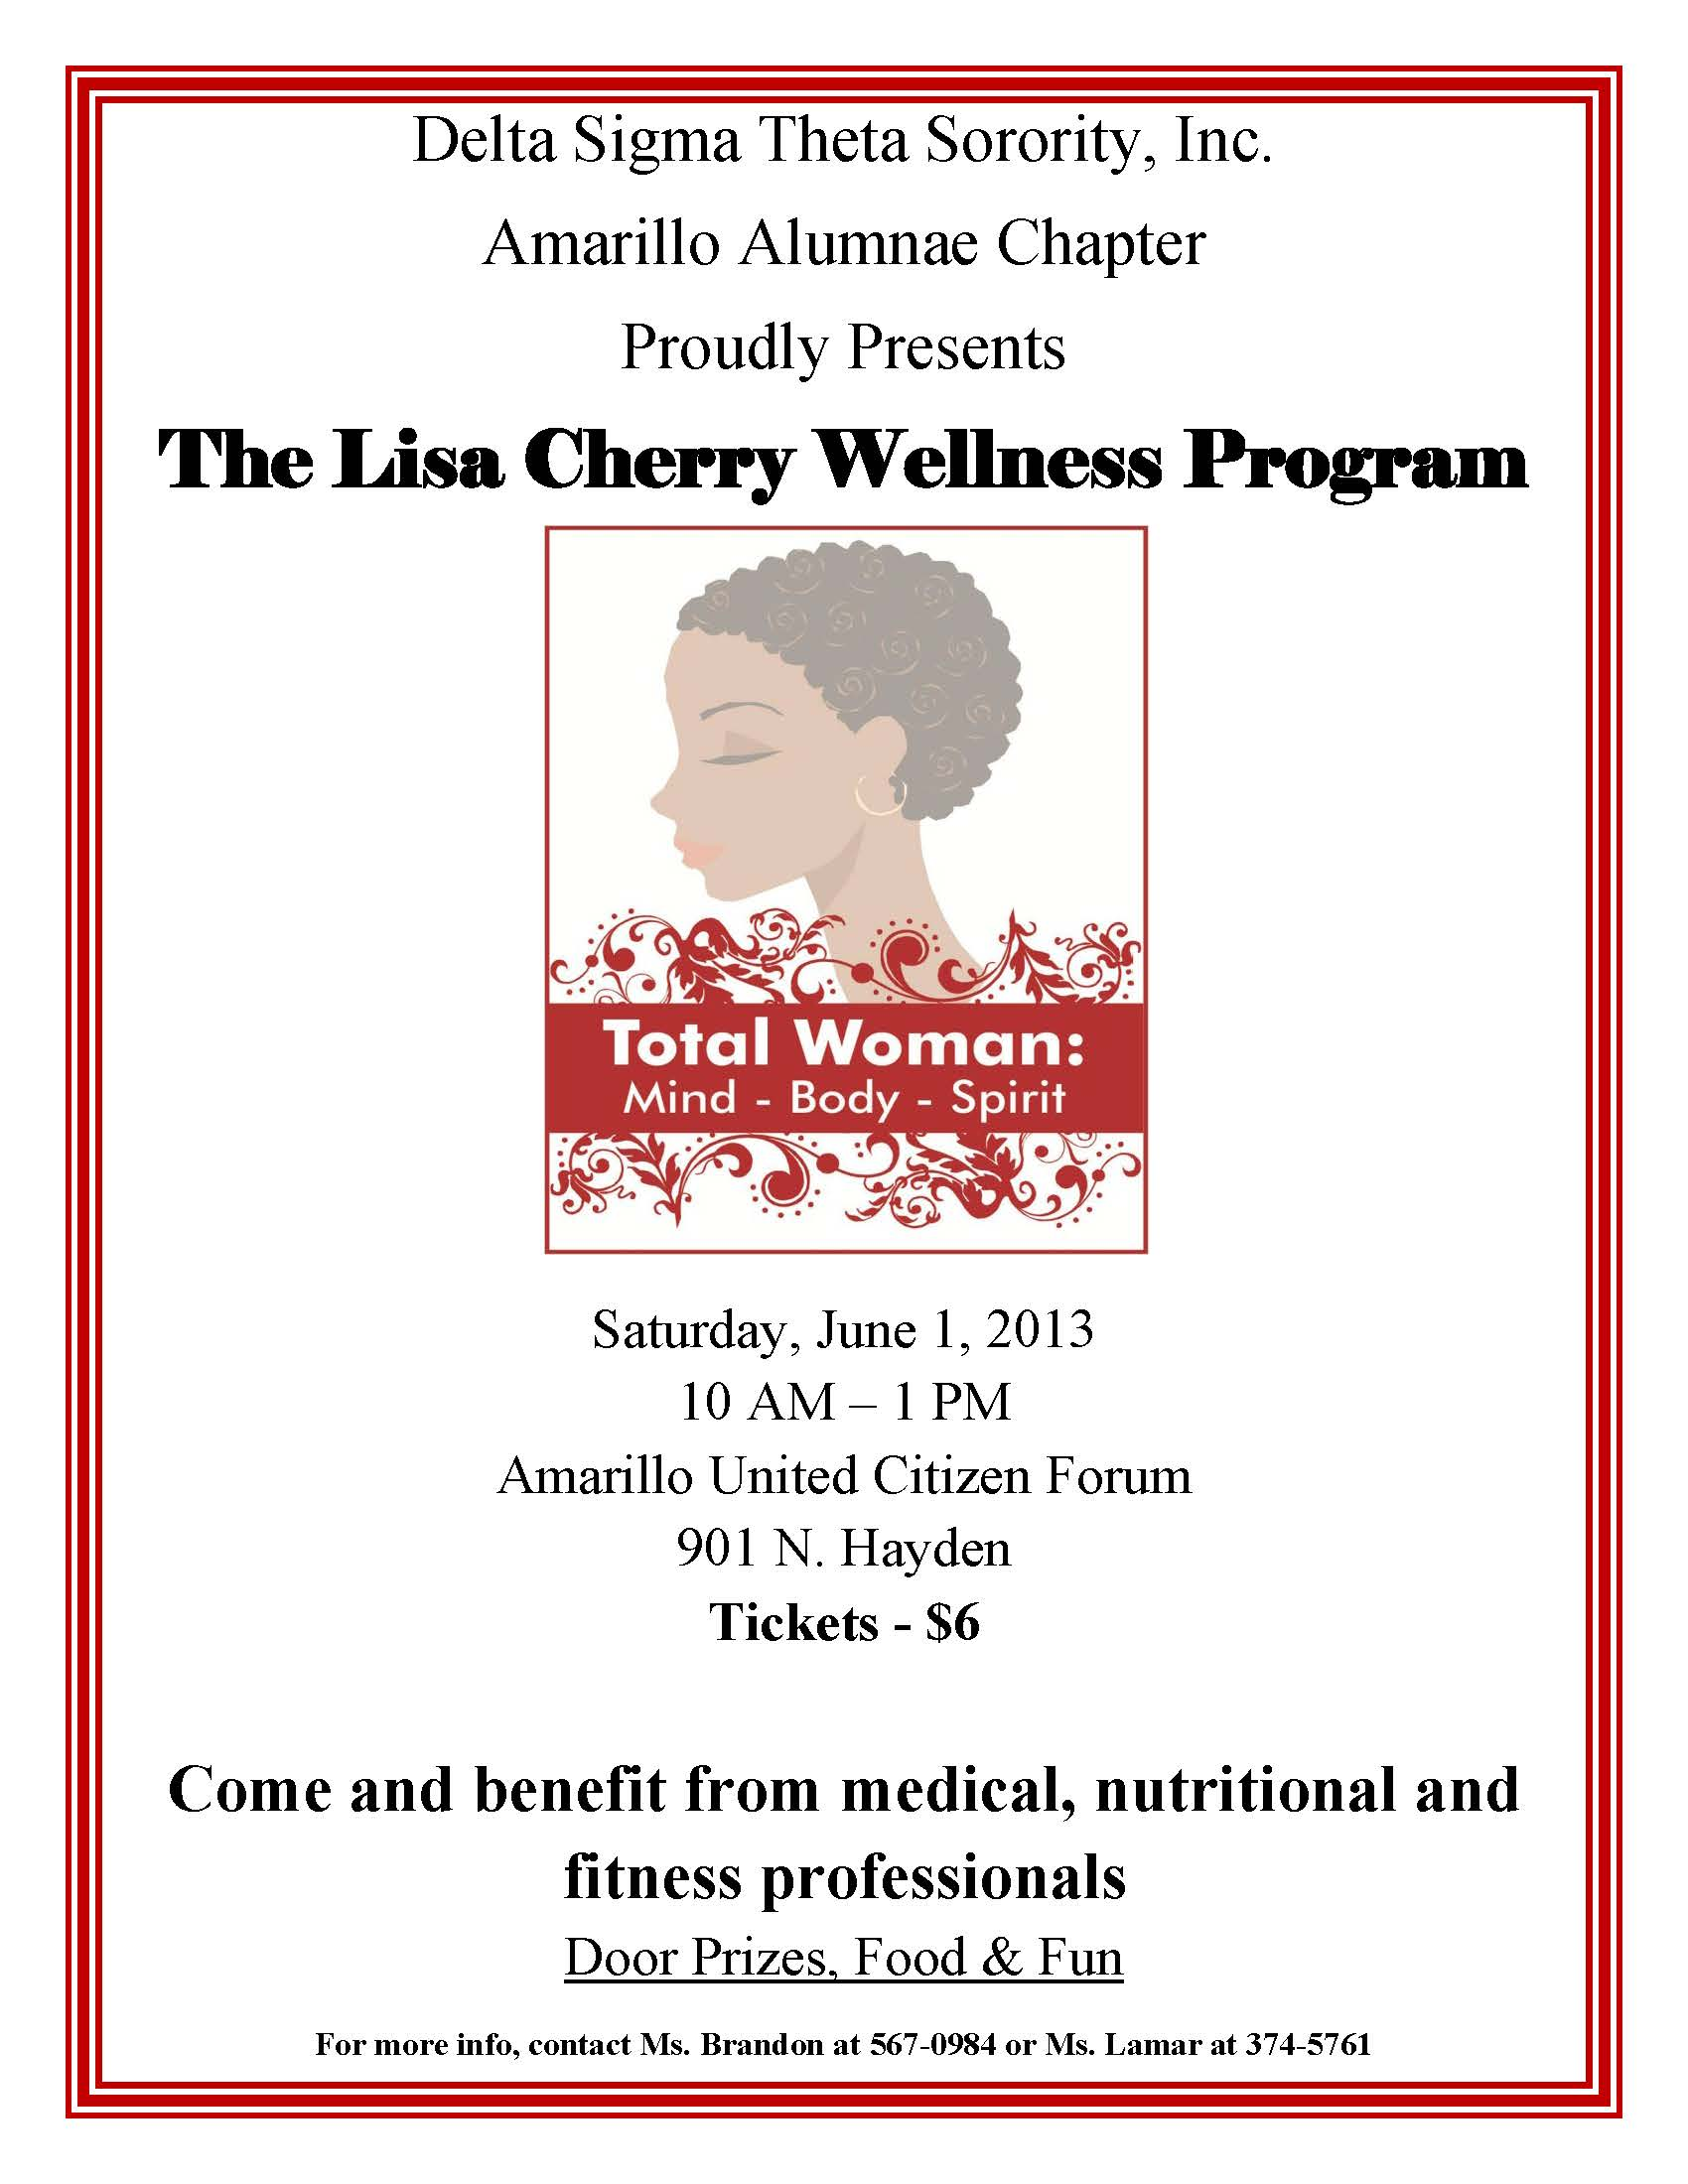 LisaCherryWellnessFlyer_June2013